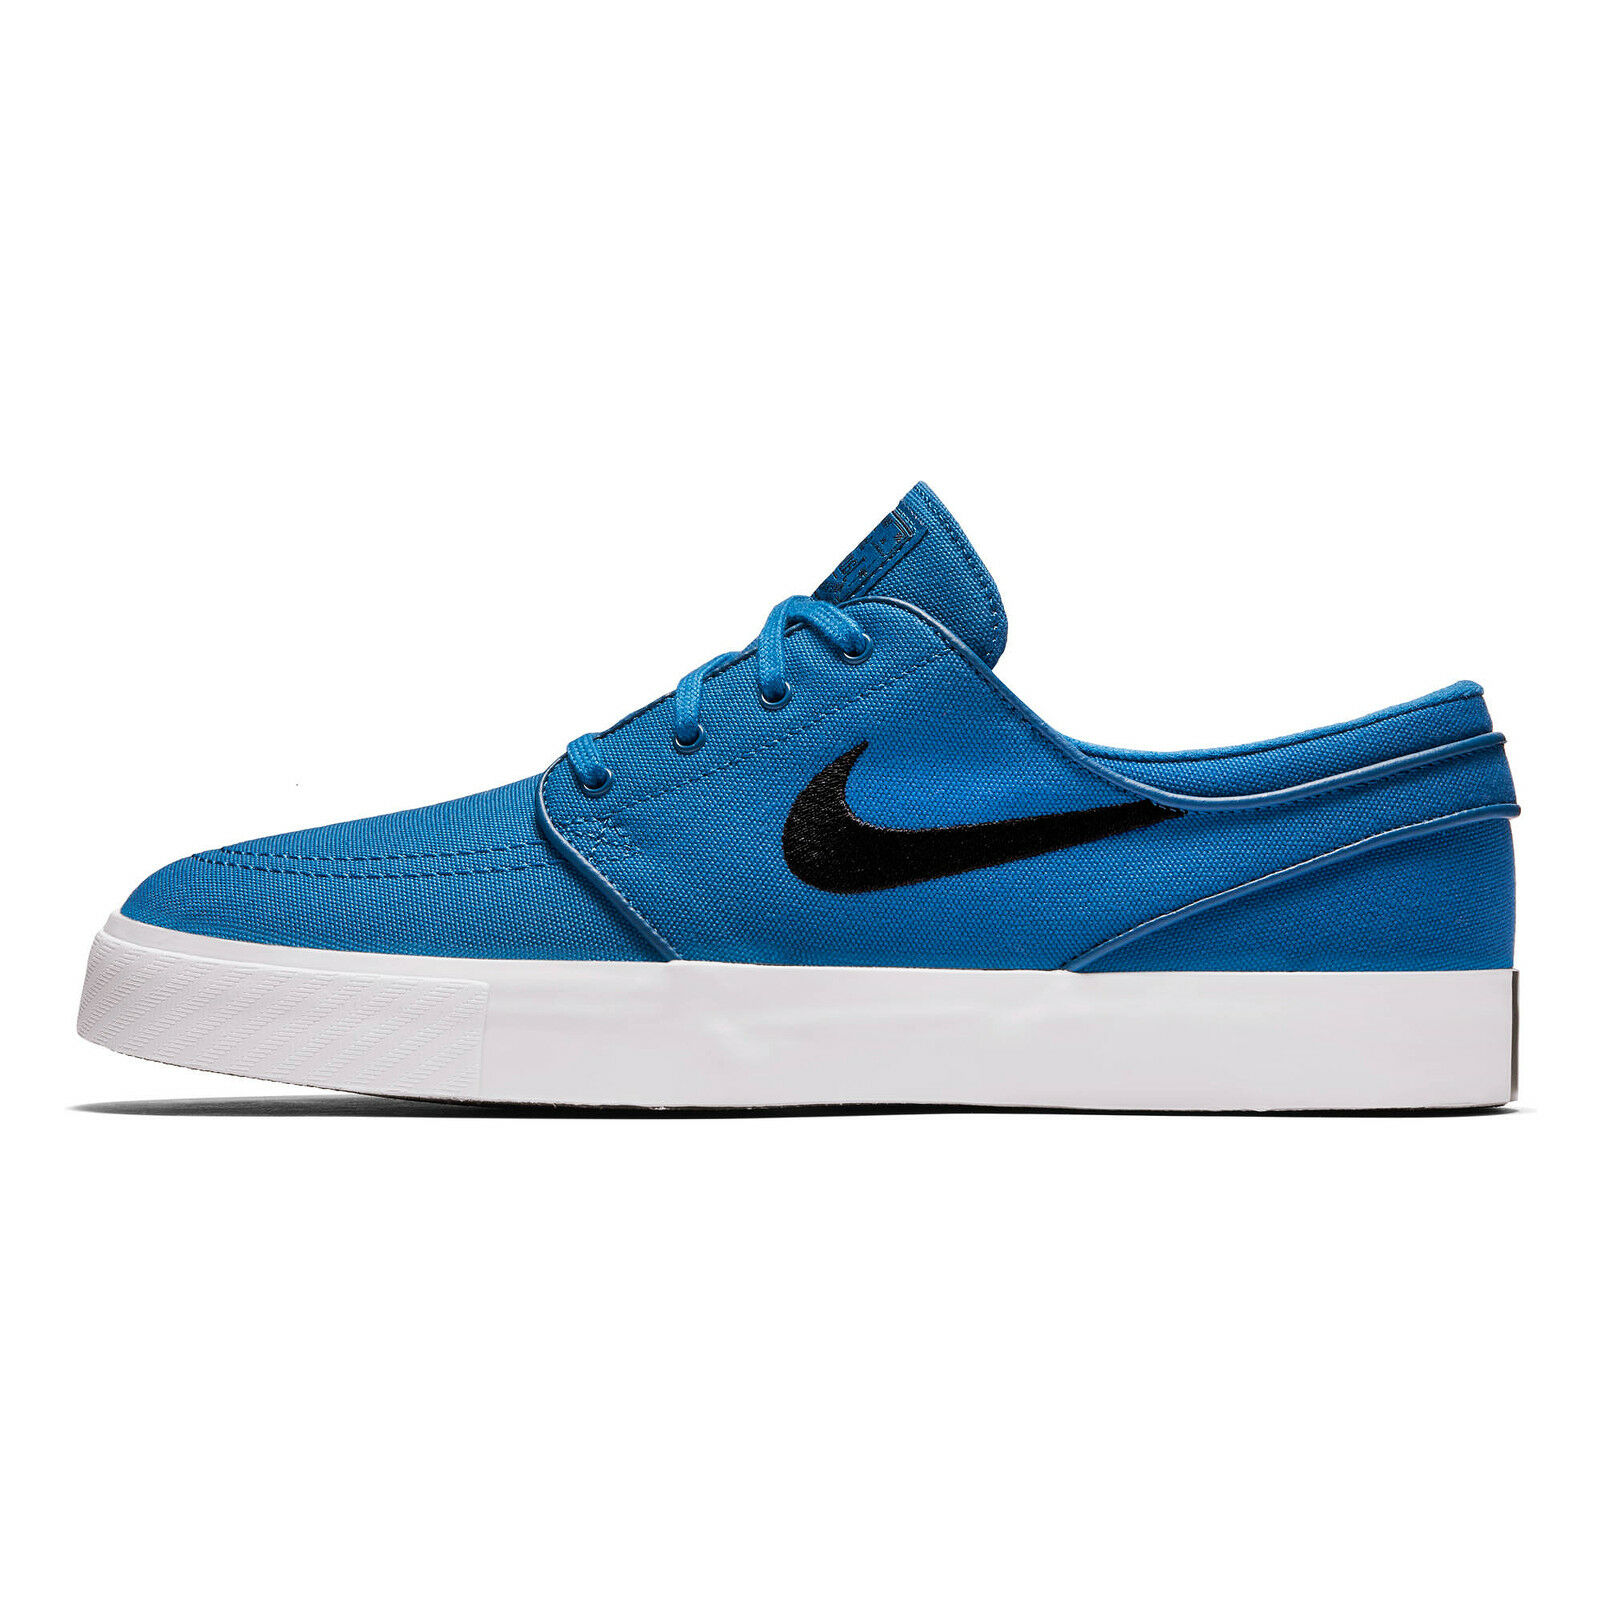 NIKE Zoom Stefan Janoski CNVS 615957-442 Trainers Skate shoe Leisure Casual wild The most popular shoes for men and women